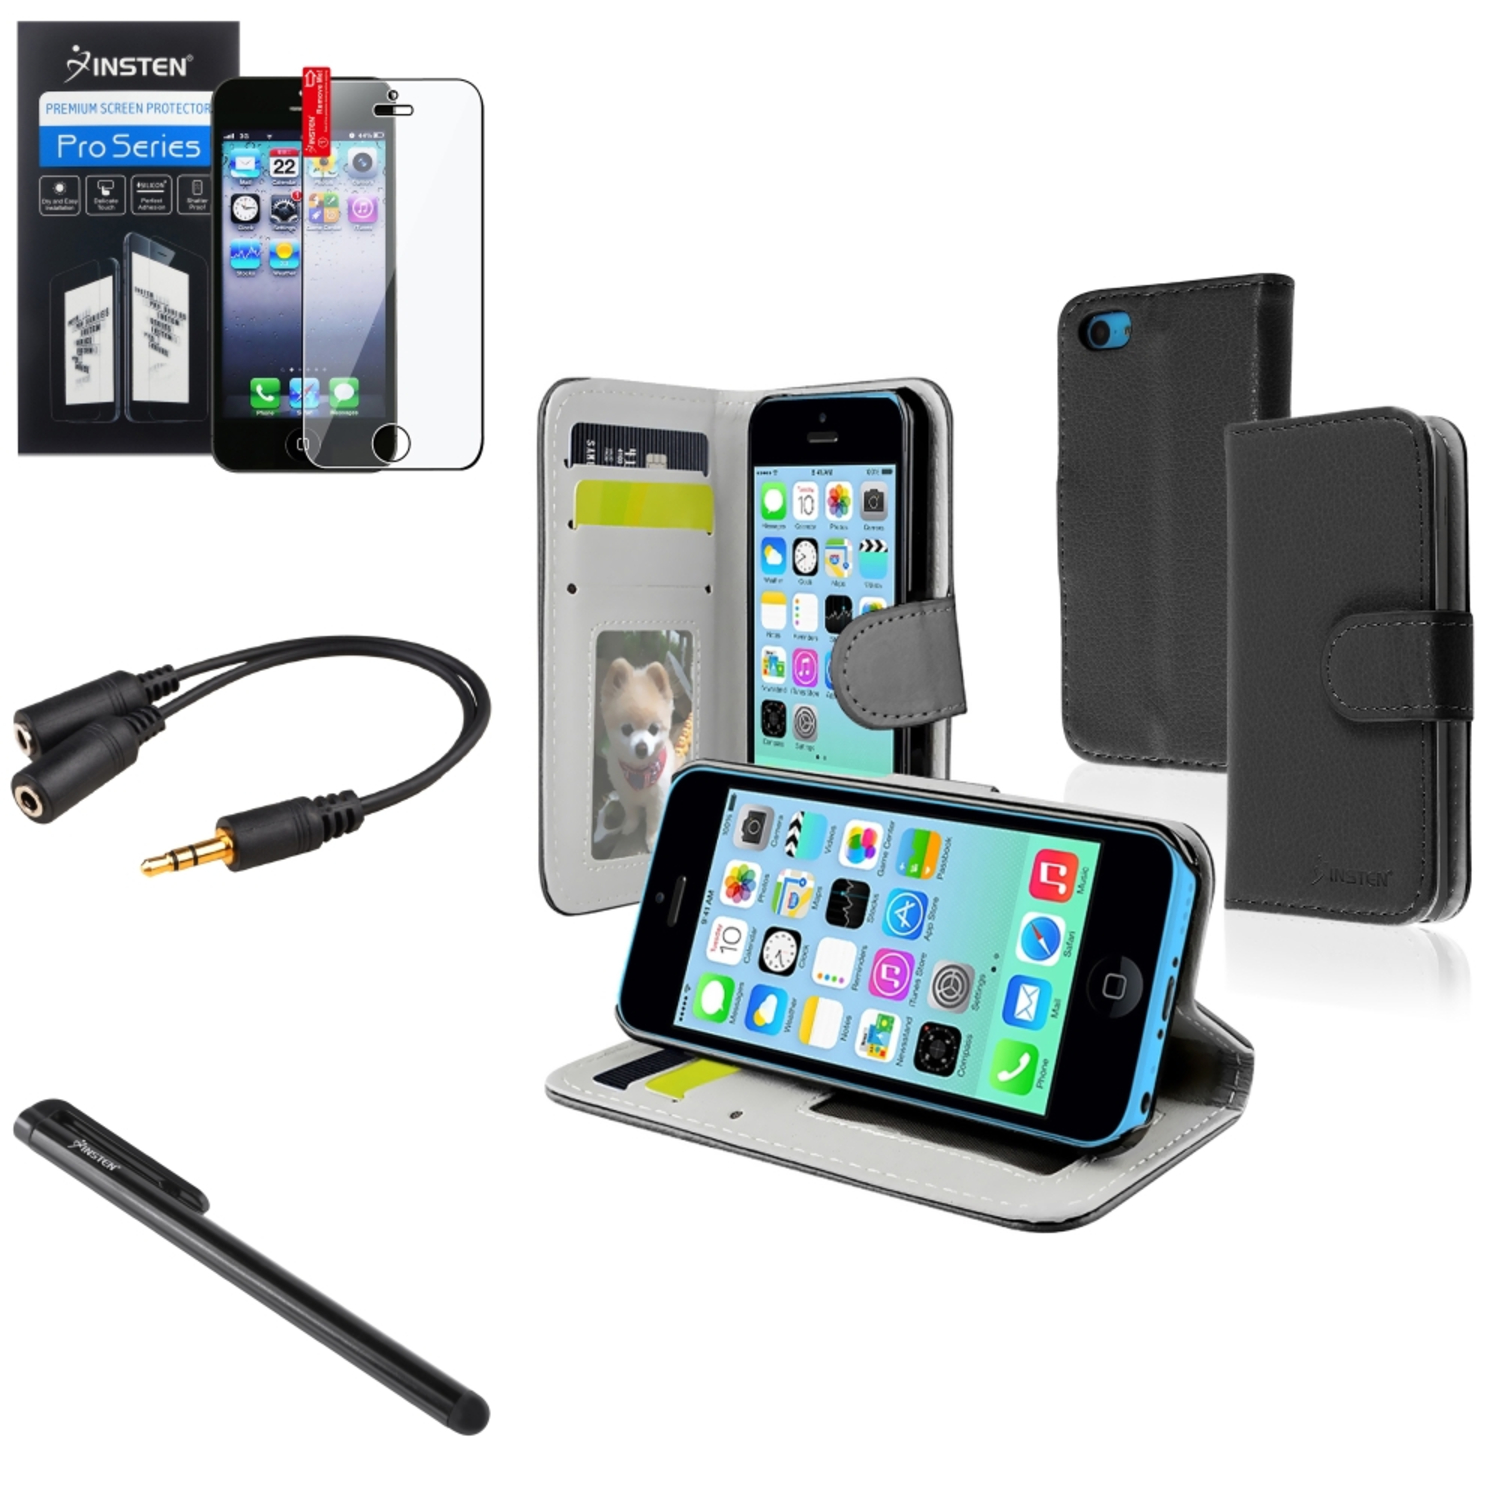 Insten Black Stand Wallet Card Leather Case Clip Stylus Pen Clear Protector Splitter For iPhone 5C